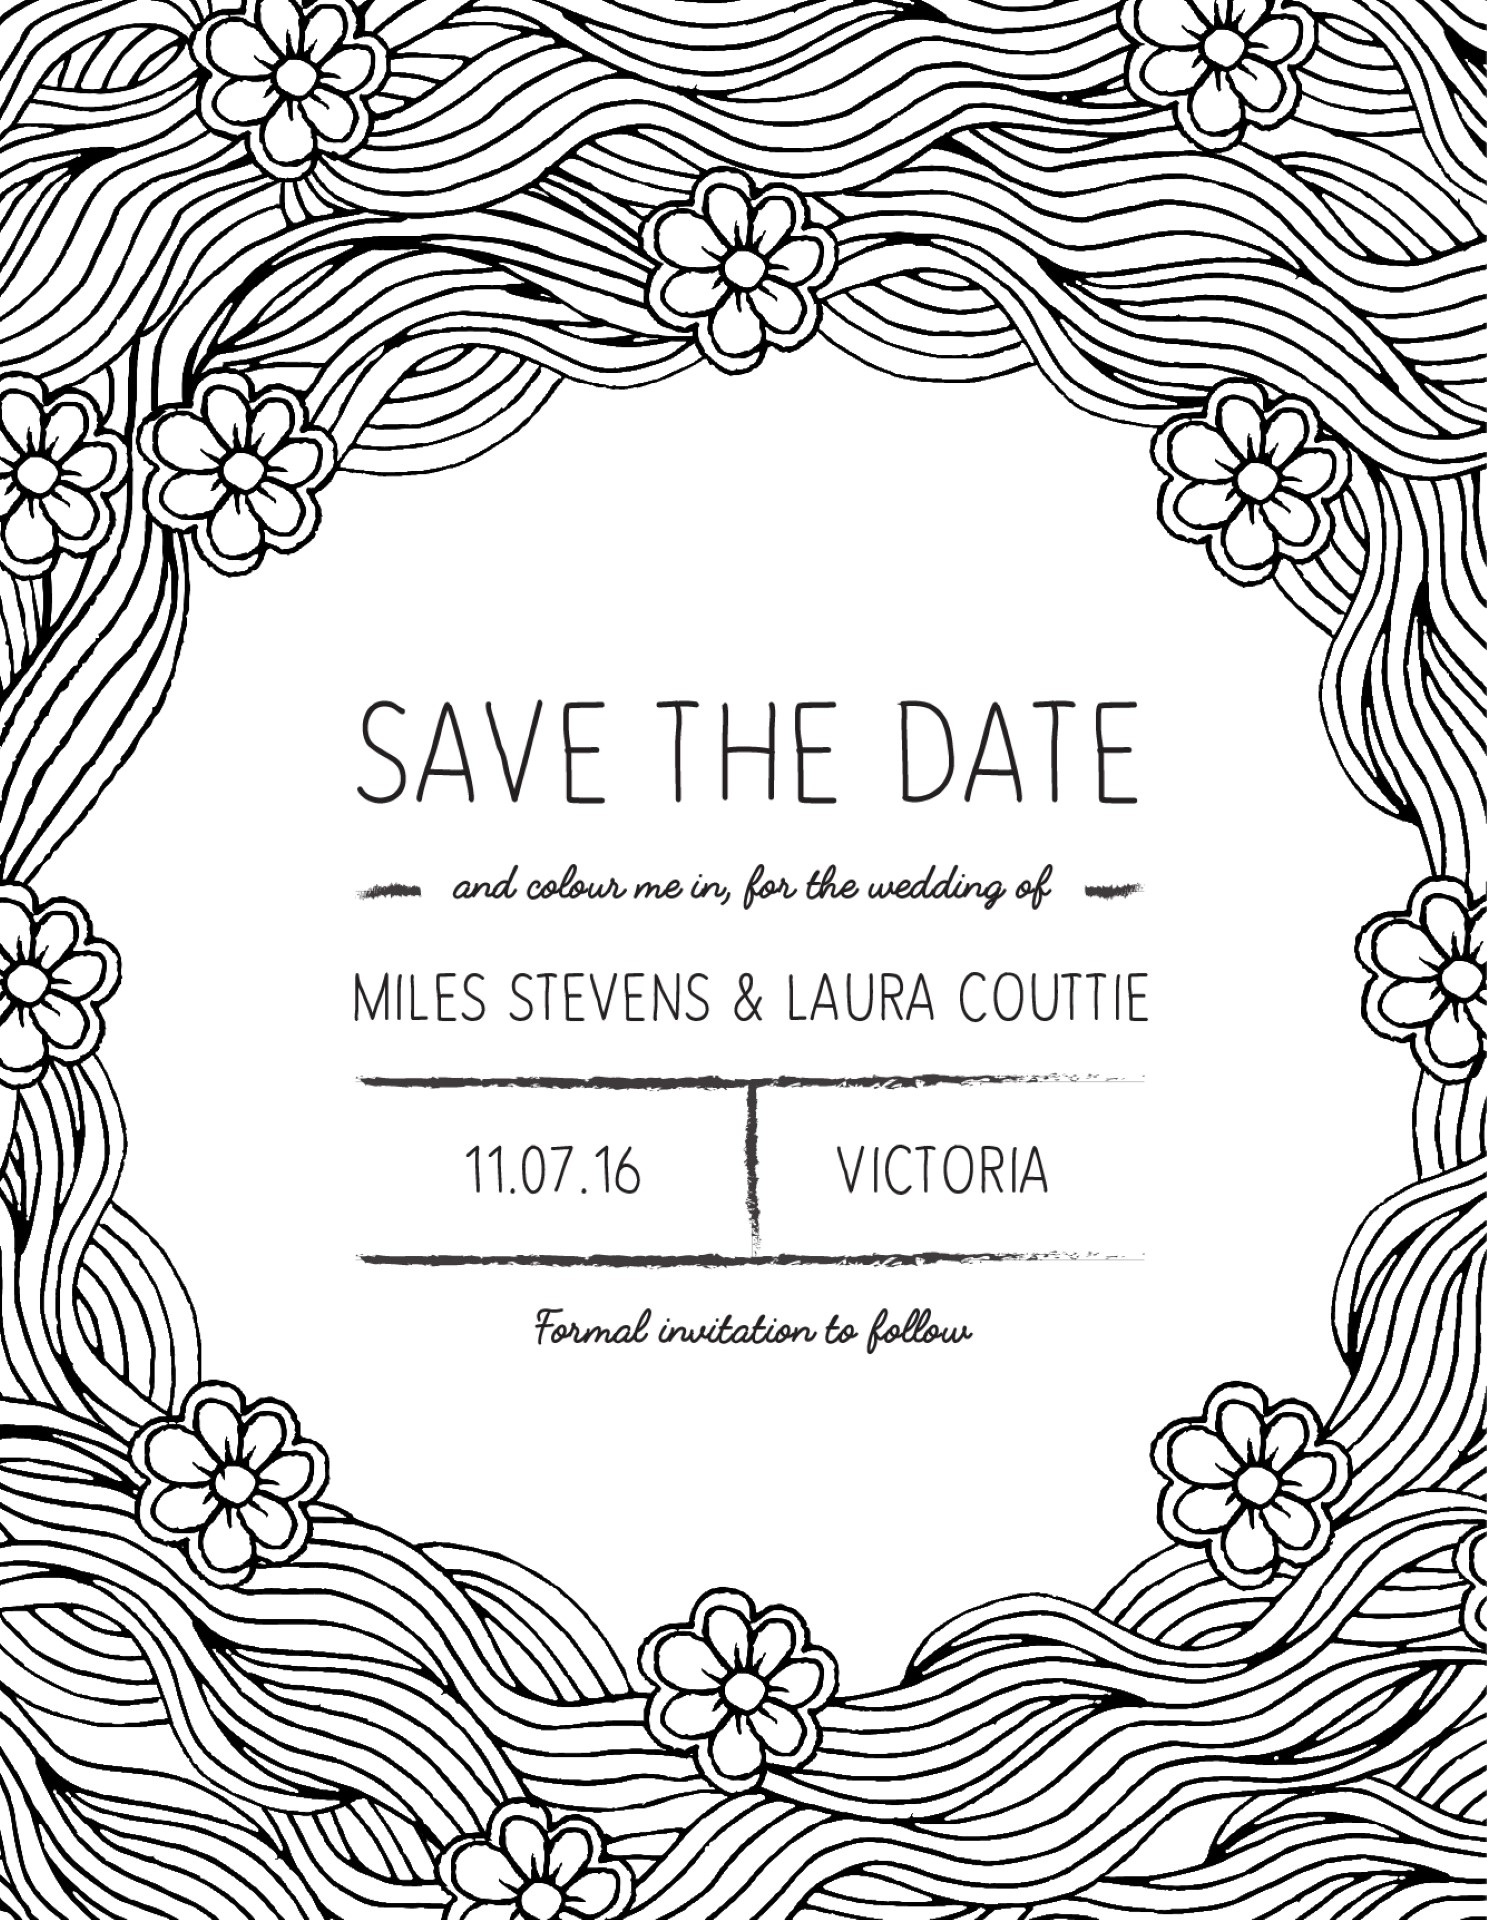 Colour Me - Save The Date